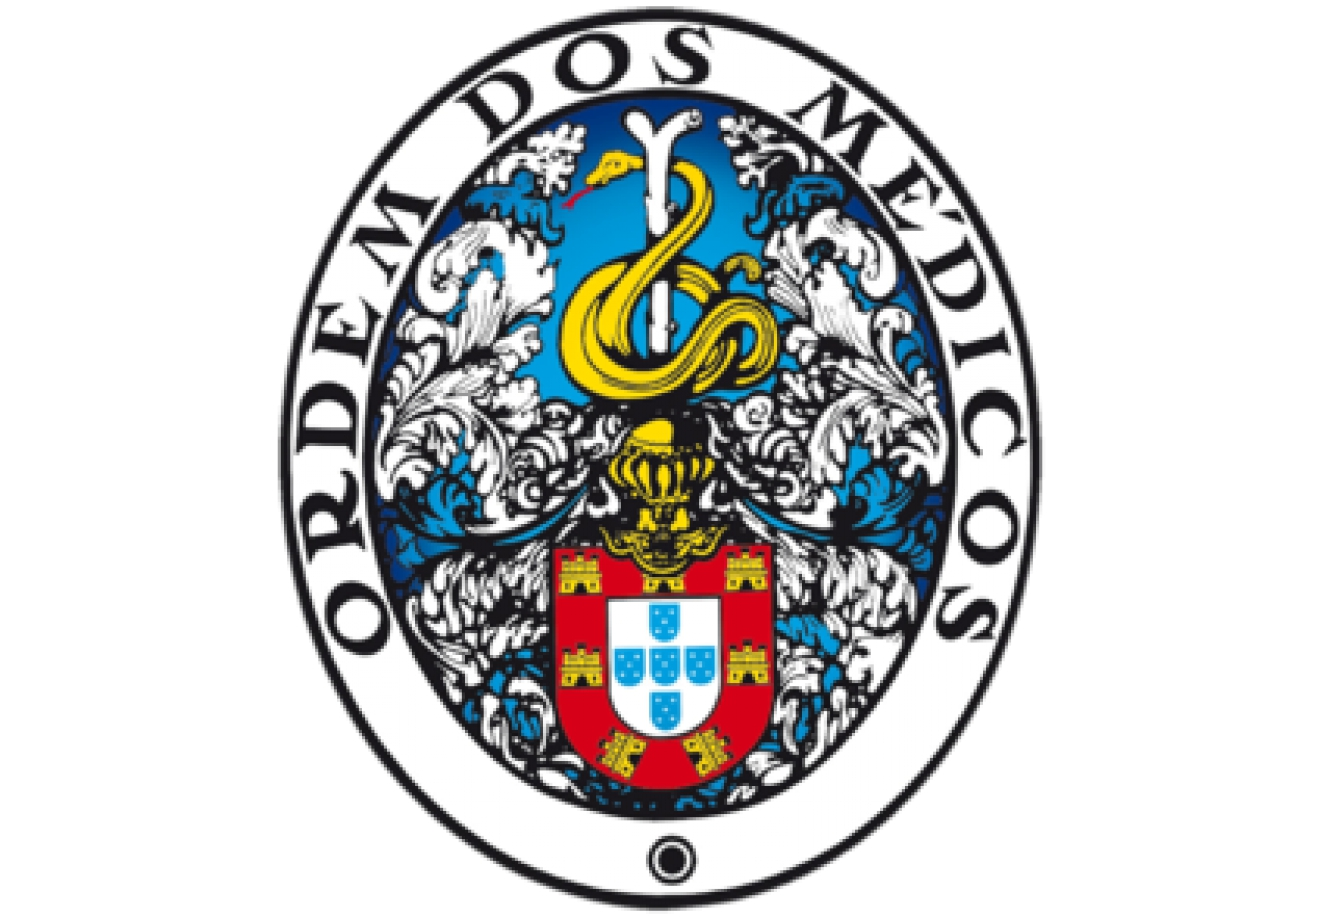 The Portuguese official proposal for the Emergency Medicine Specialty creation